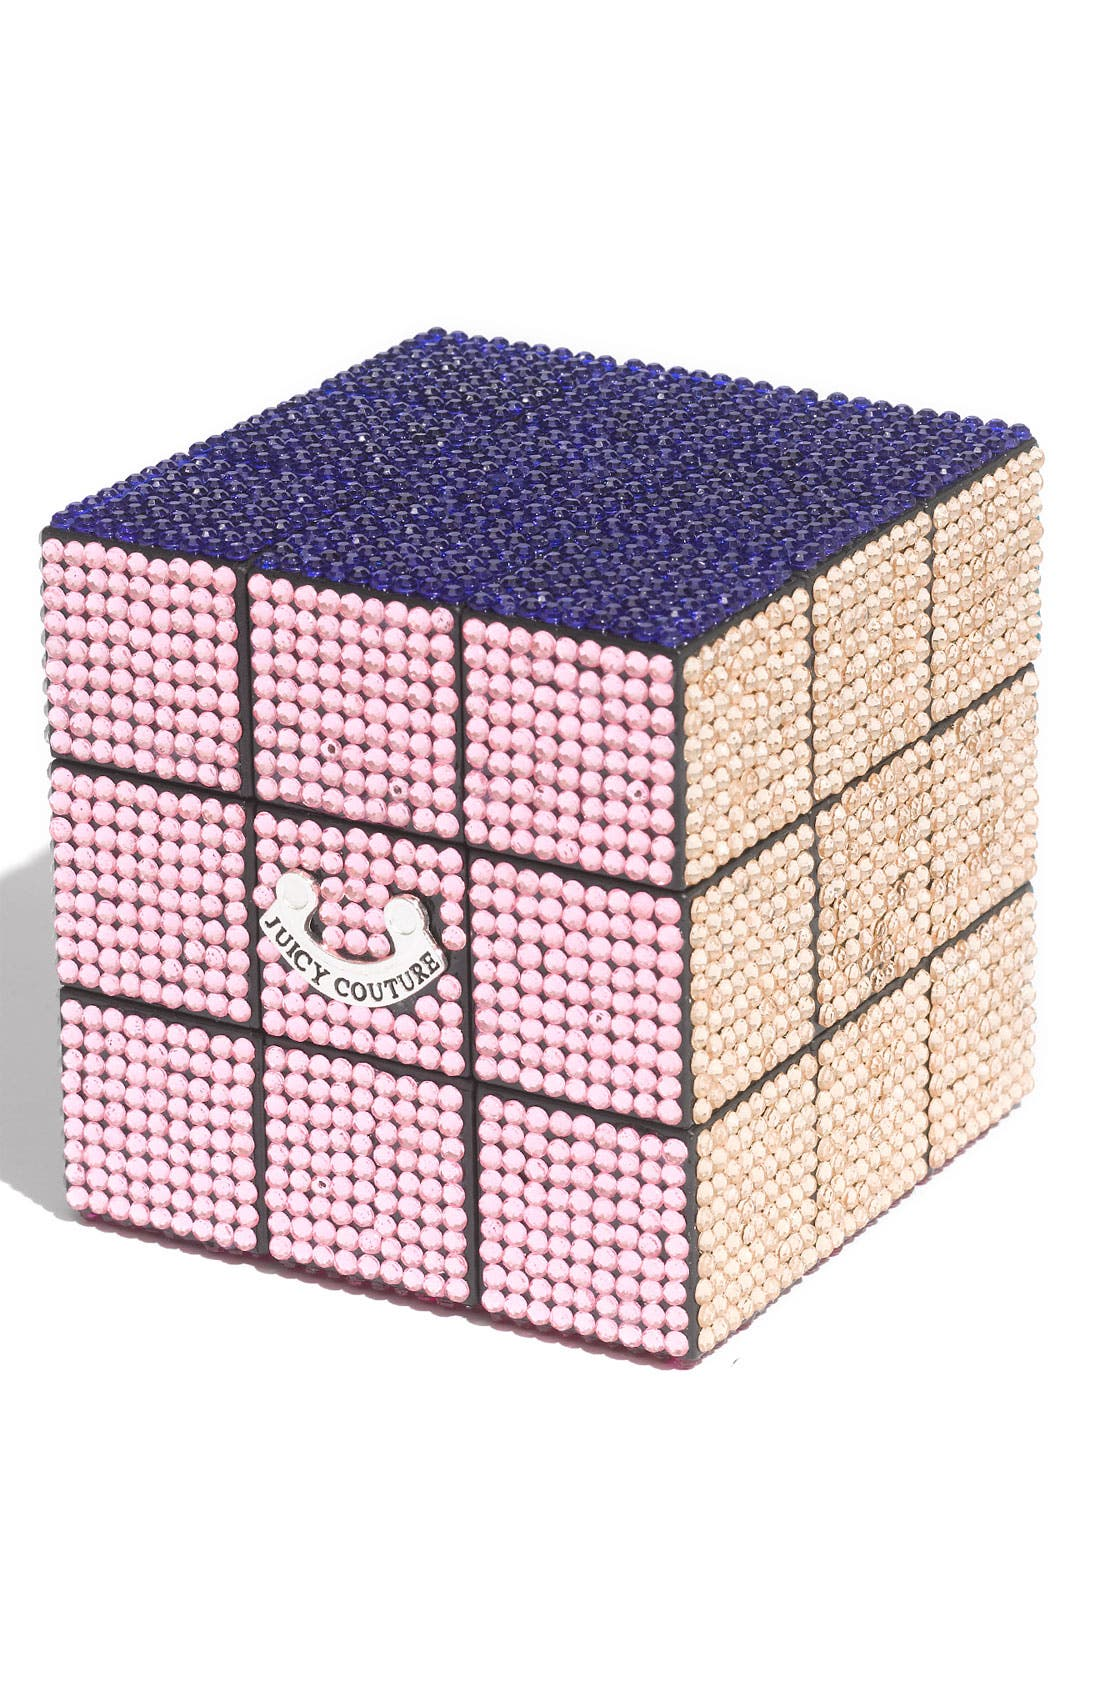 Alternate Image 1 Selected - Juicy Couture Embellished Puzzle Cube (Limited Edition)